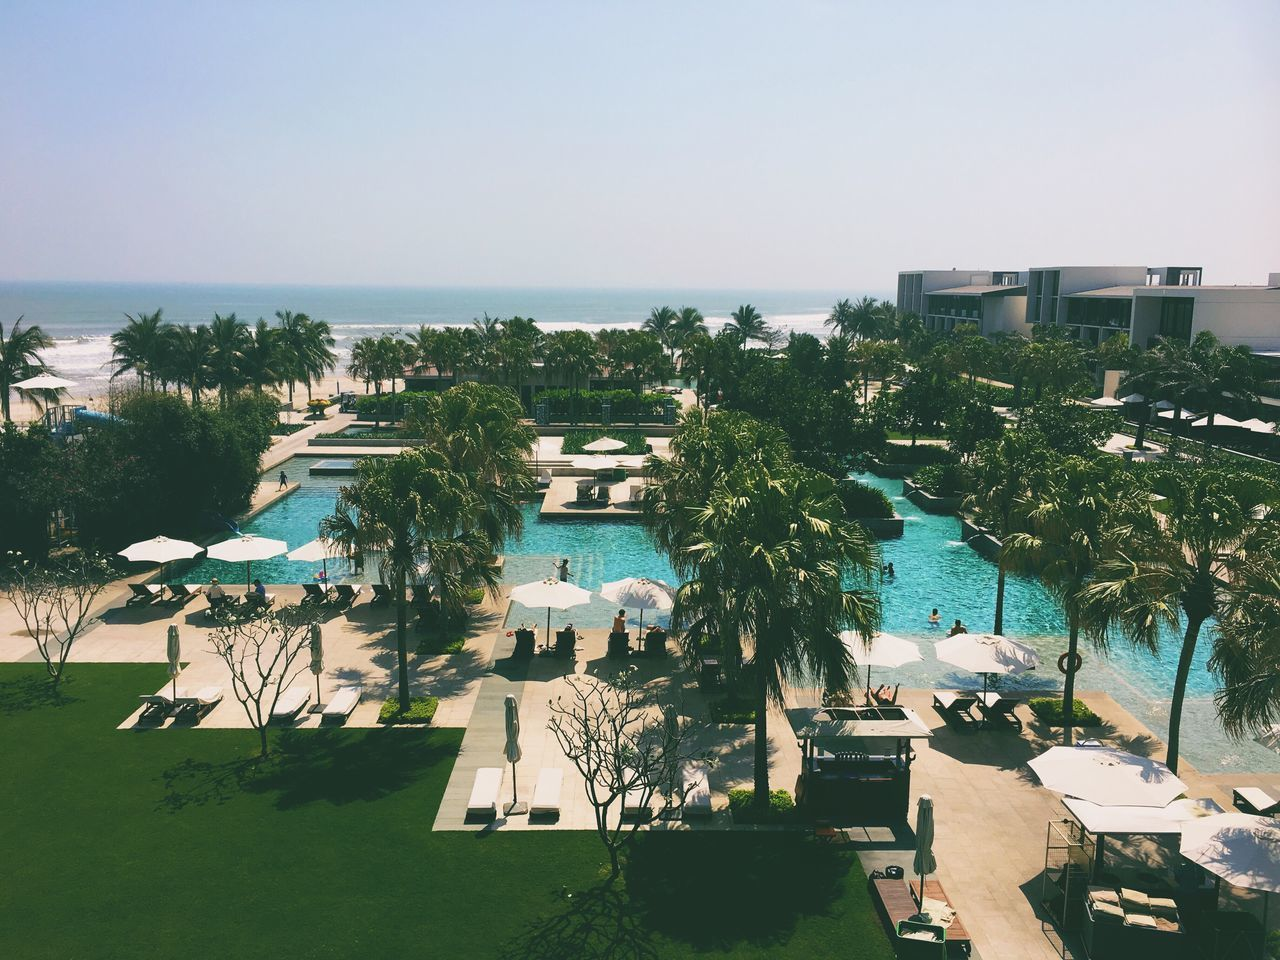 Hyatt Hyatt Regency Hotel Resort Summer Pool Nice Atmosphere Beautiful Surroundings Resting View Relaxing Traveling Showcase March Vscogood Vscocam VSCO Da Nang Vietnam Vacation Sky Beach Sea Holiday Ocean